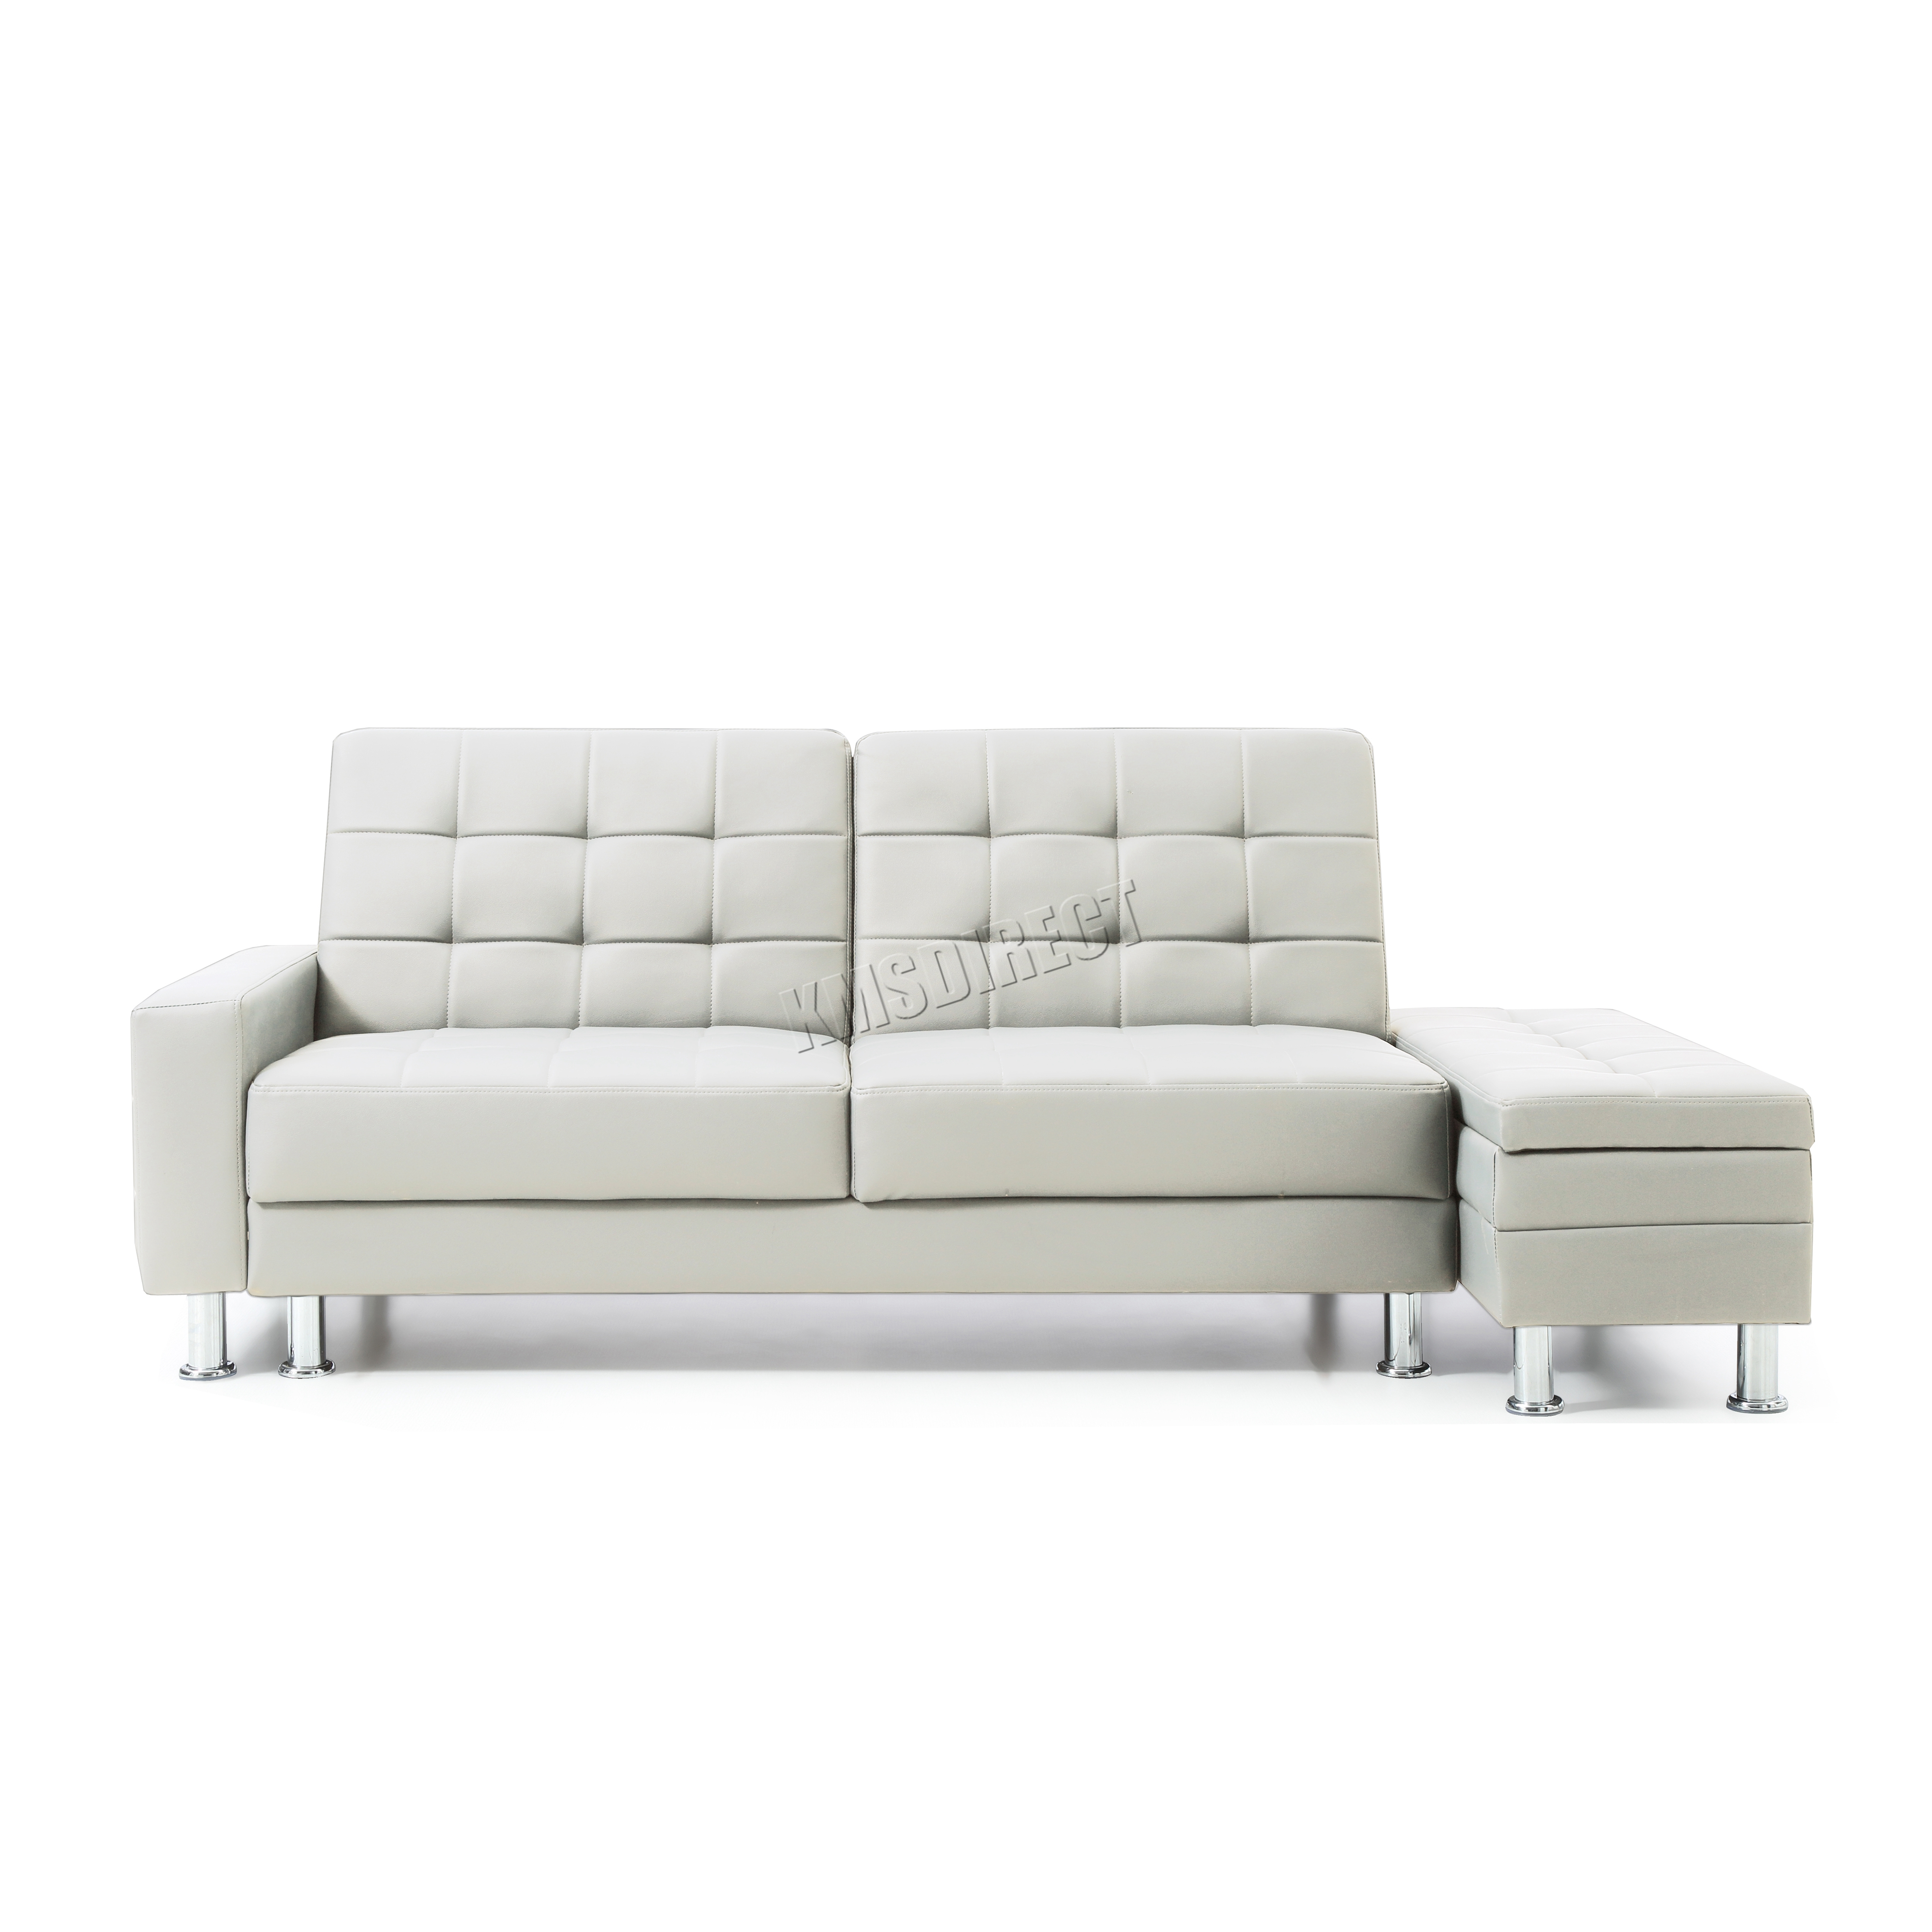 WestWood PU Sofa Bed With Storage 3 Seater